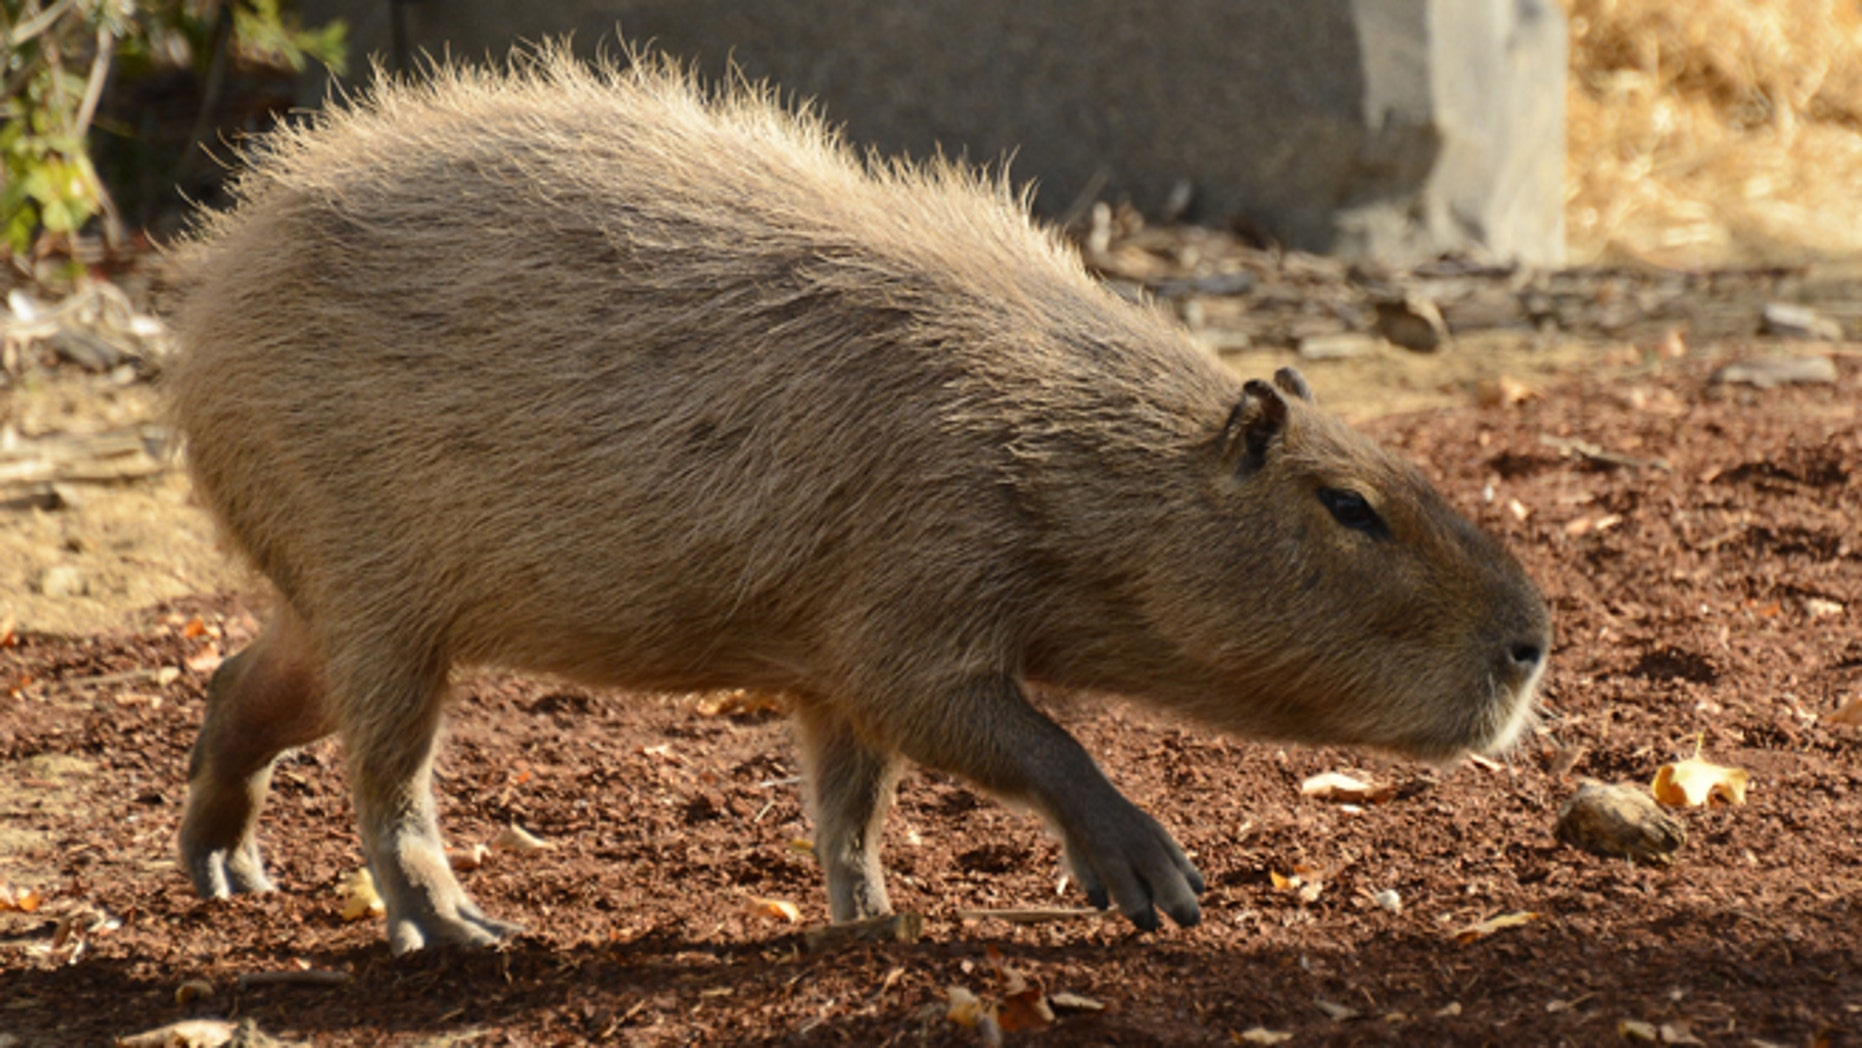 A Capybara is pictured at the Paris Zoological Park. AFP PHOTO / BERTRAND GUAY        (Photo credit should read BERTRAND GUAY/AFP/Getty Images)